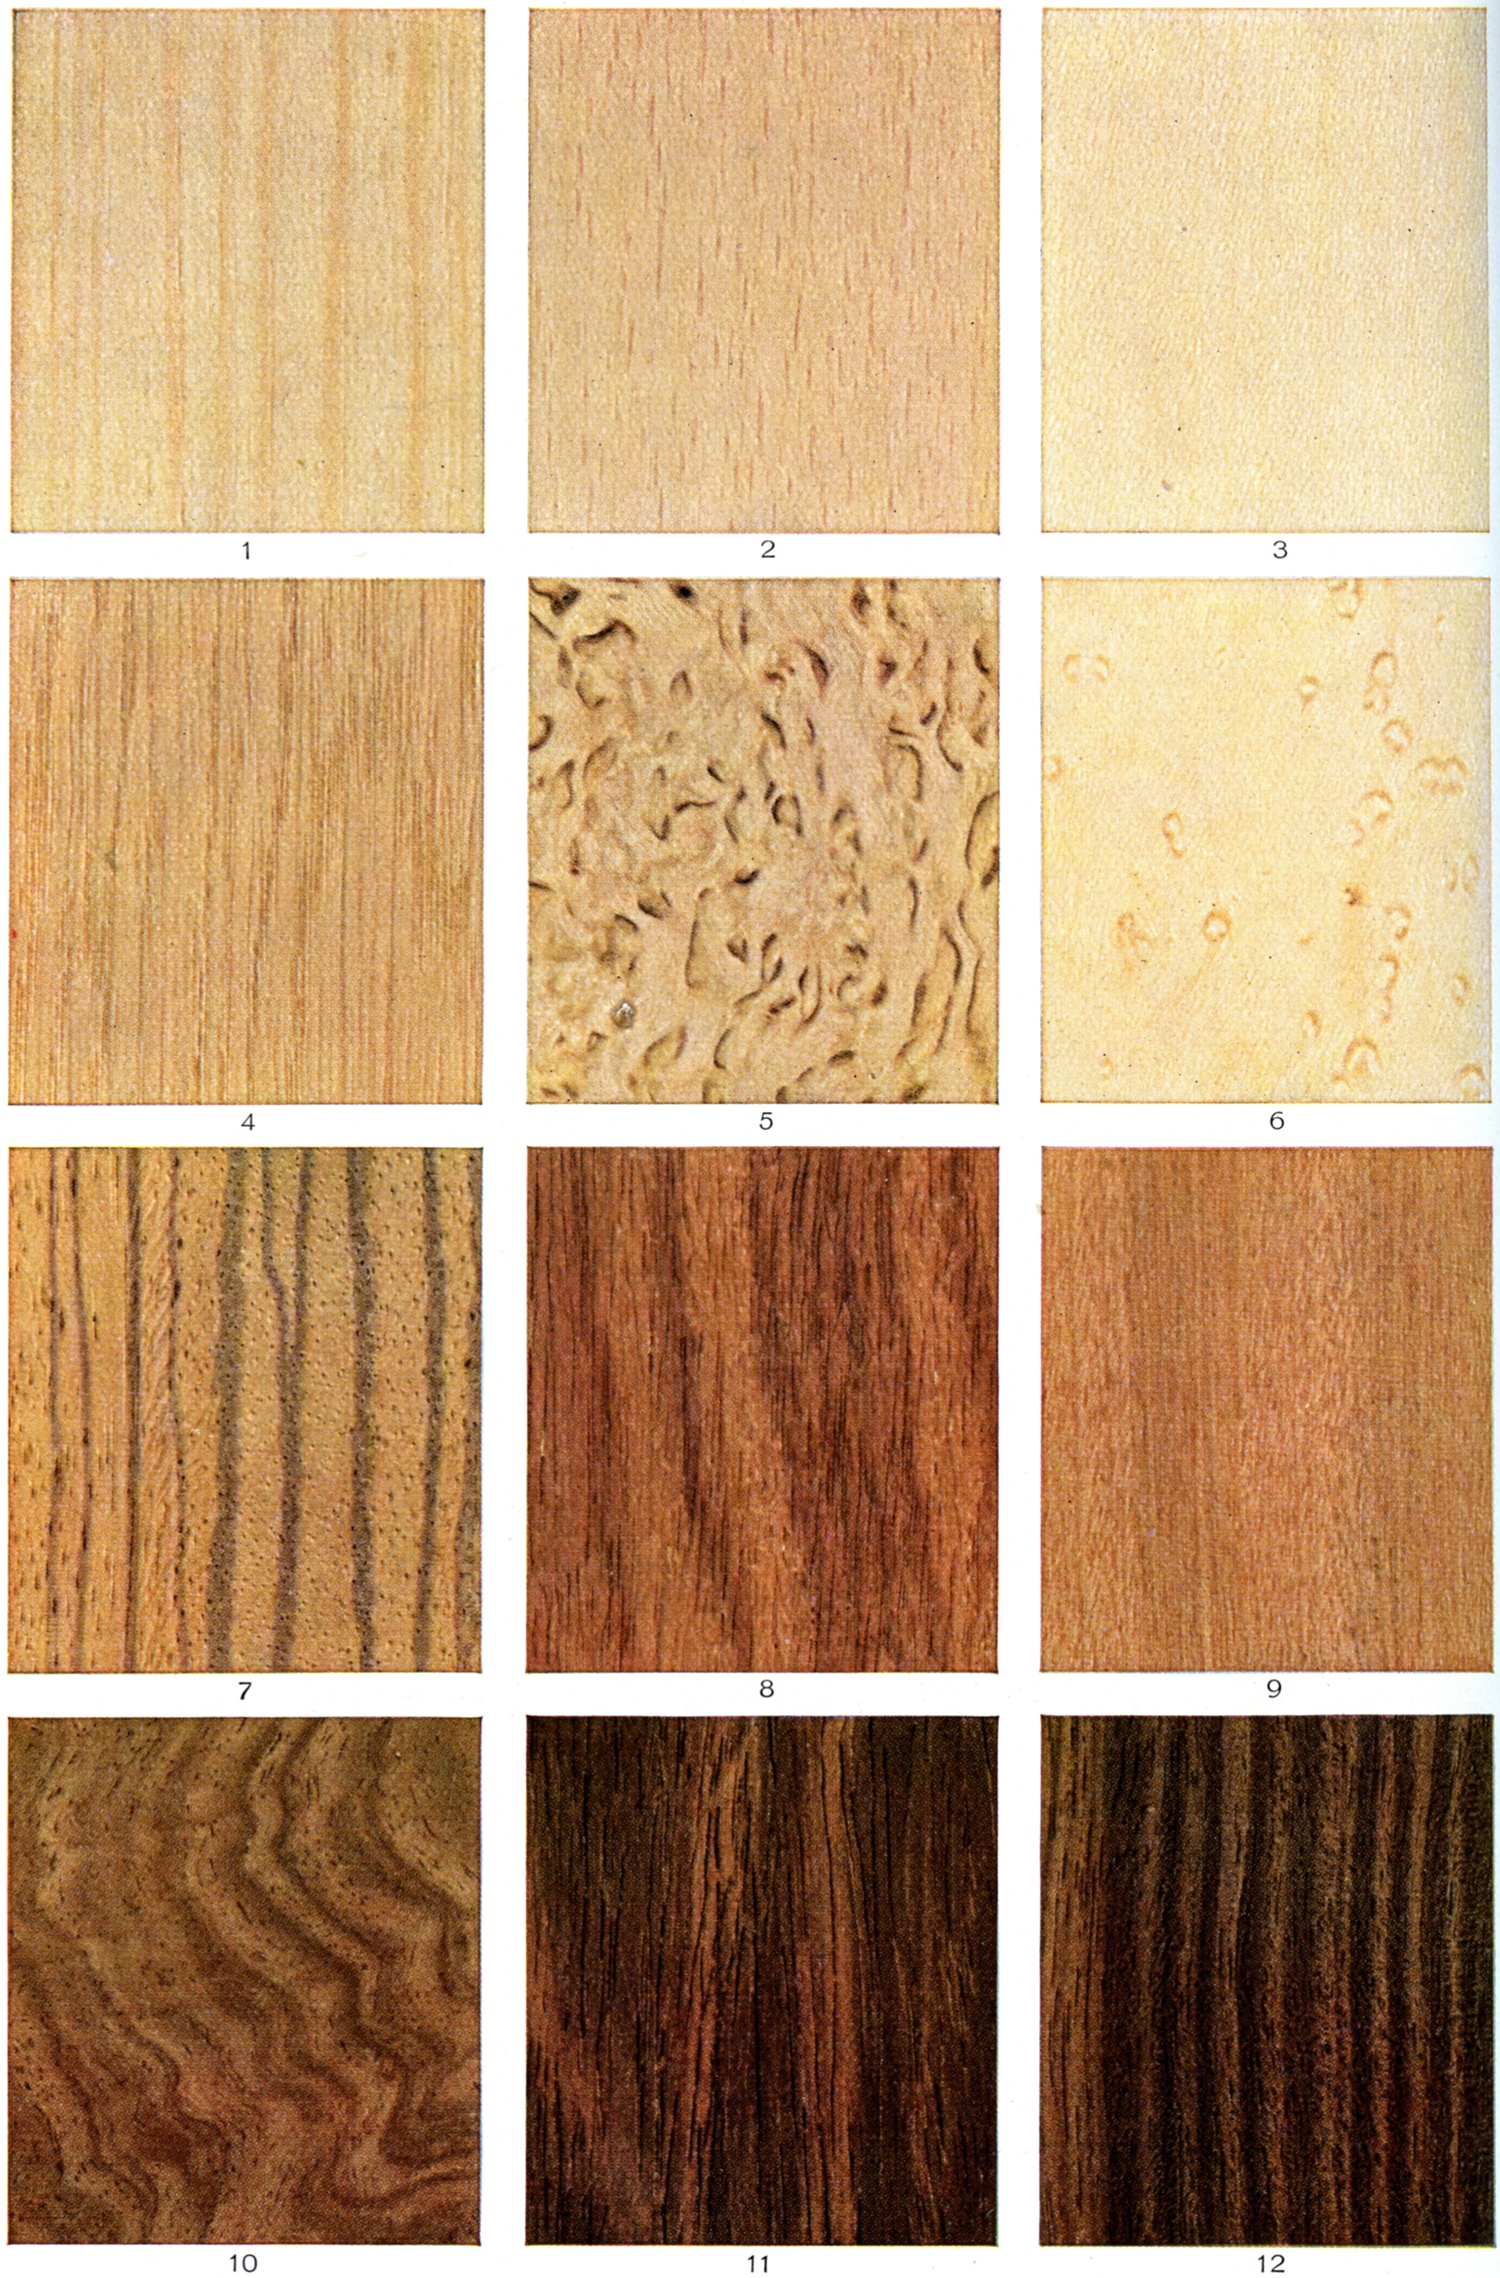 Is it OK to mix-and-match wood species in your home?